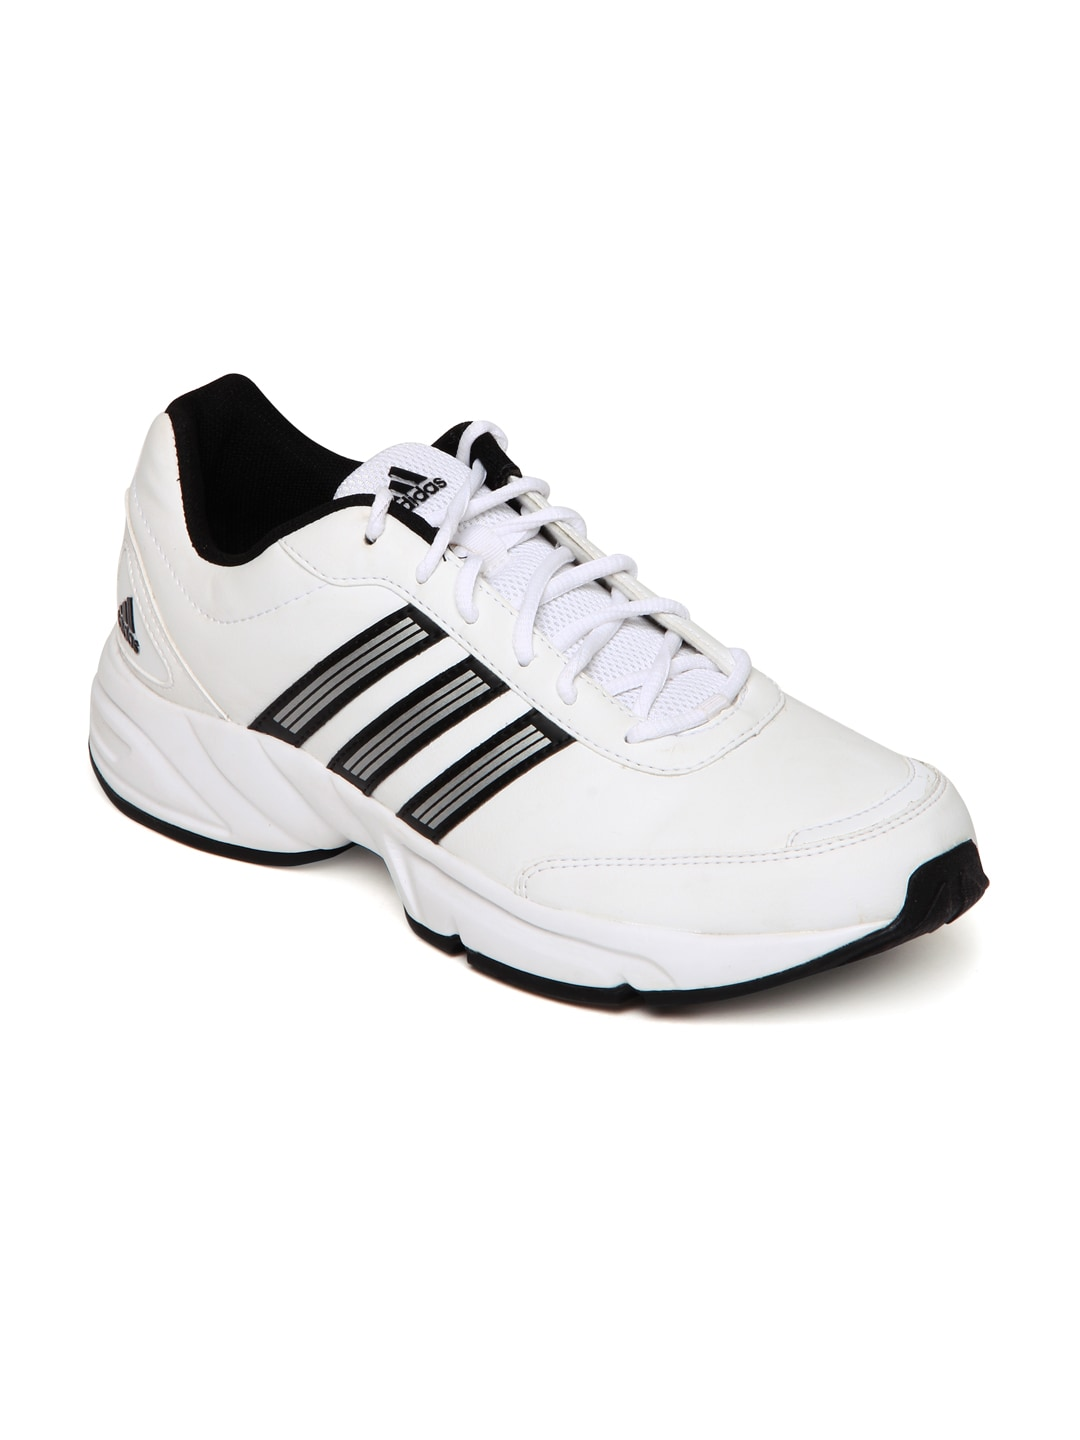 adidas sports shoes for men in india